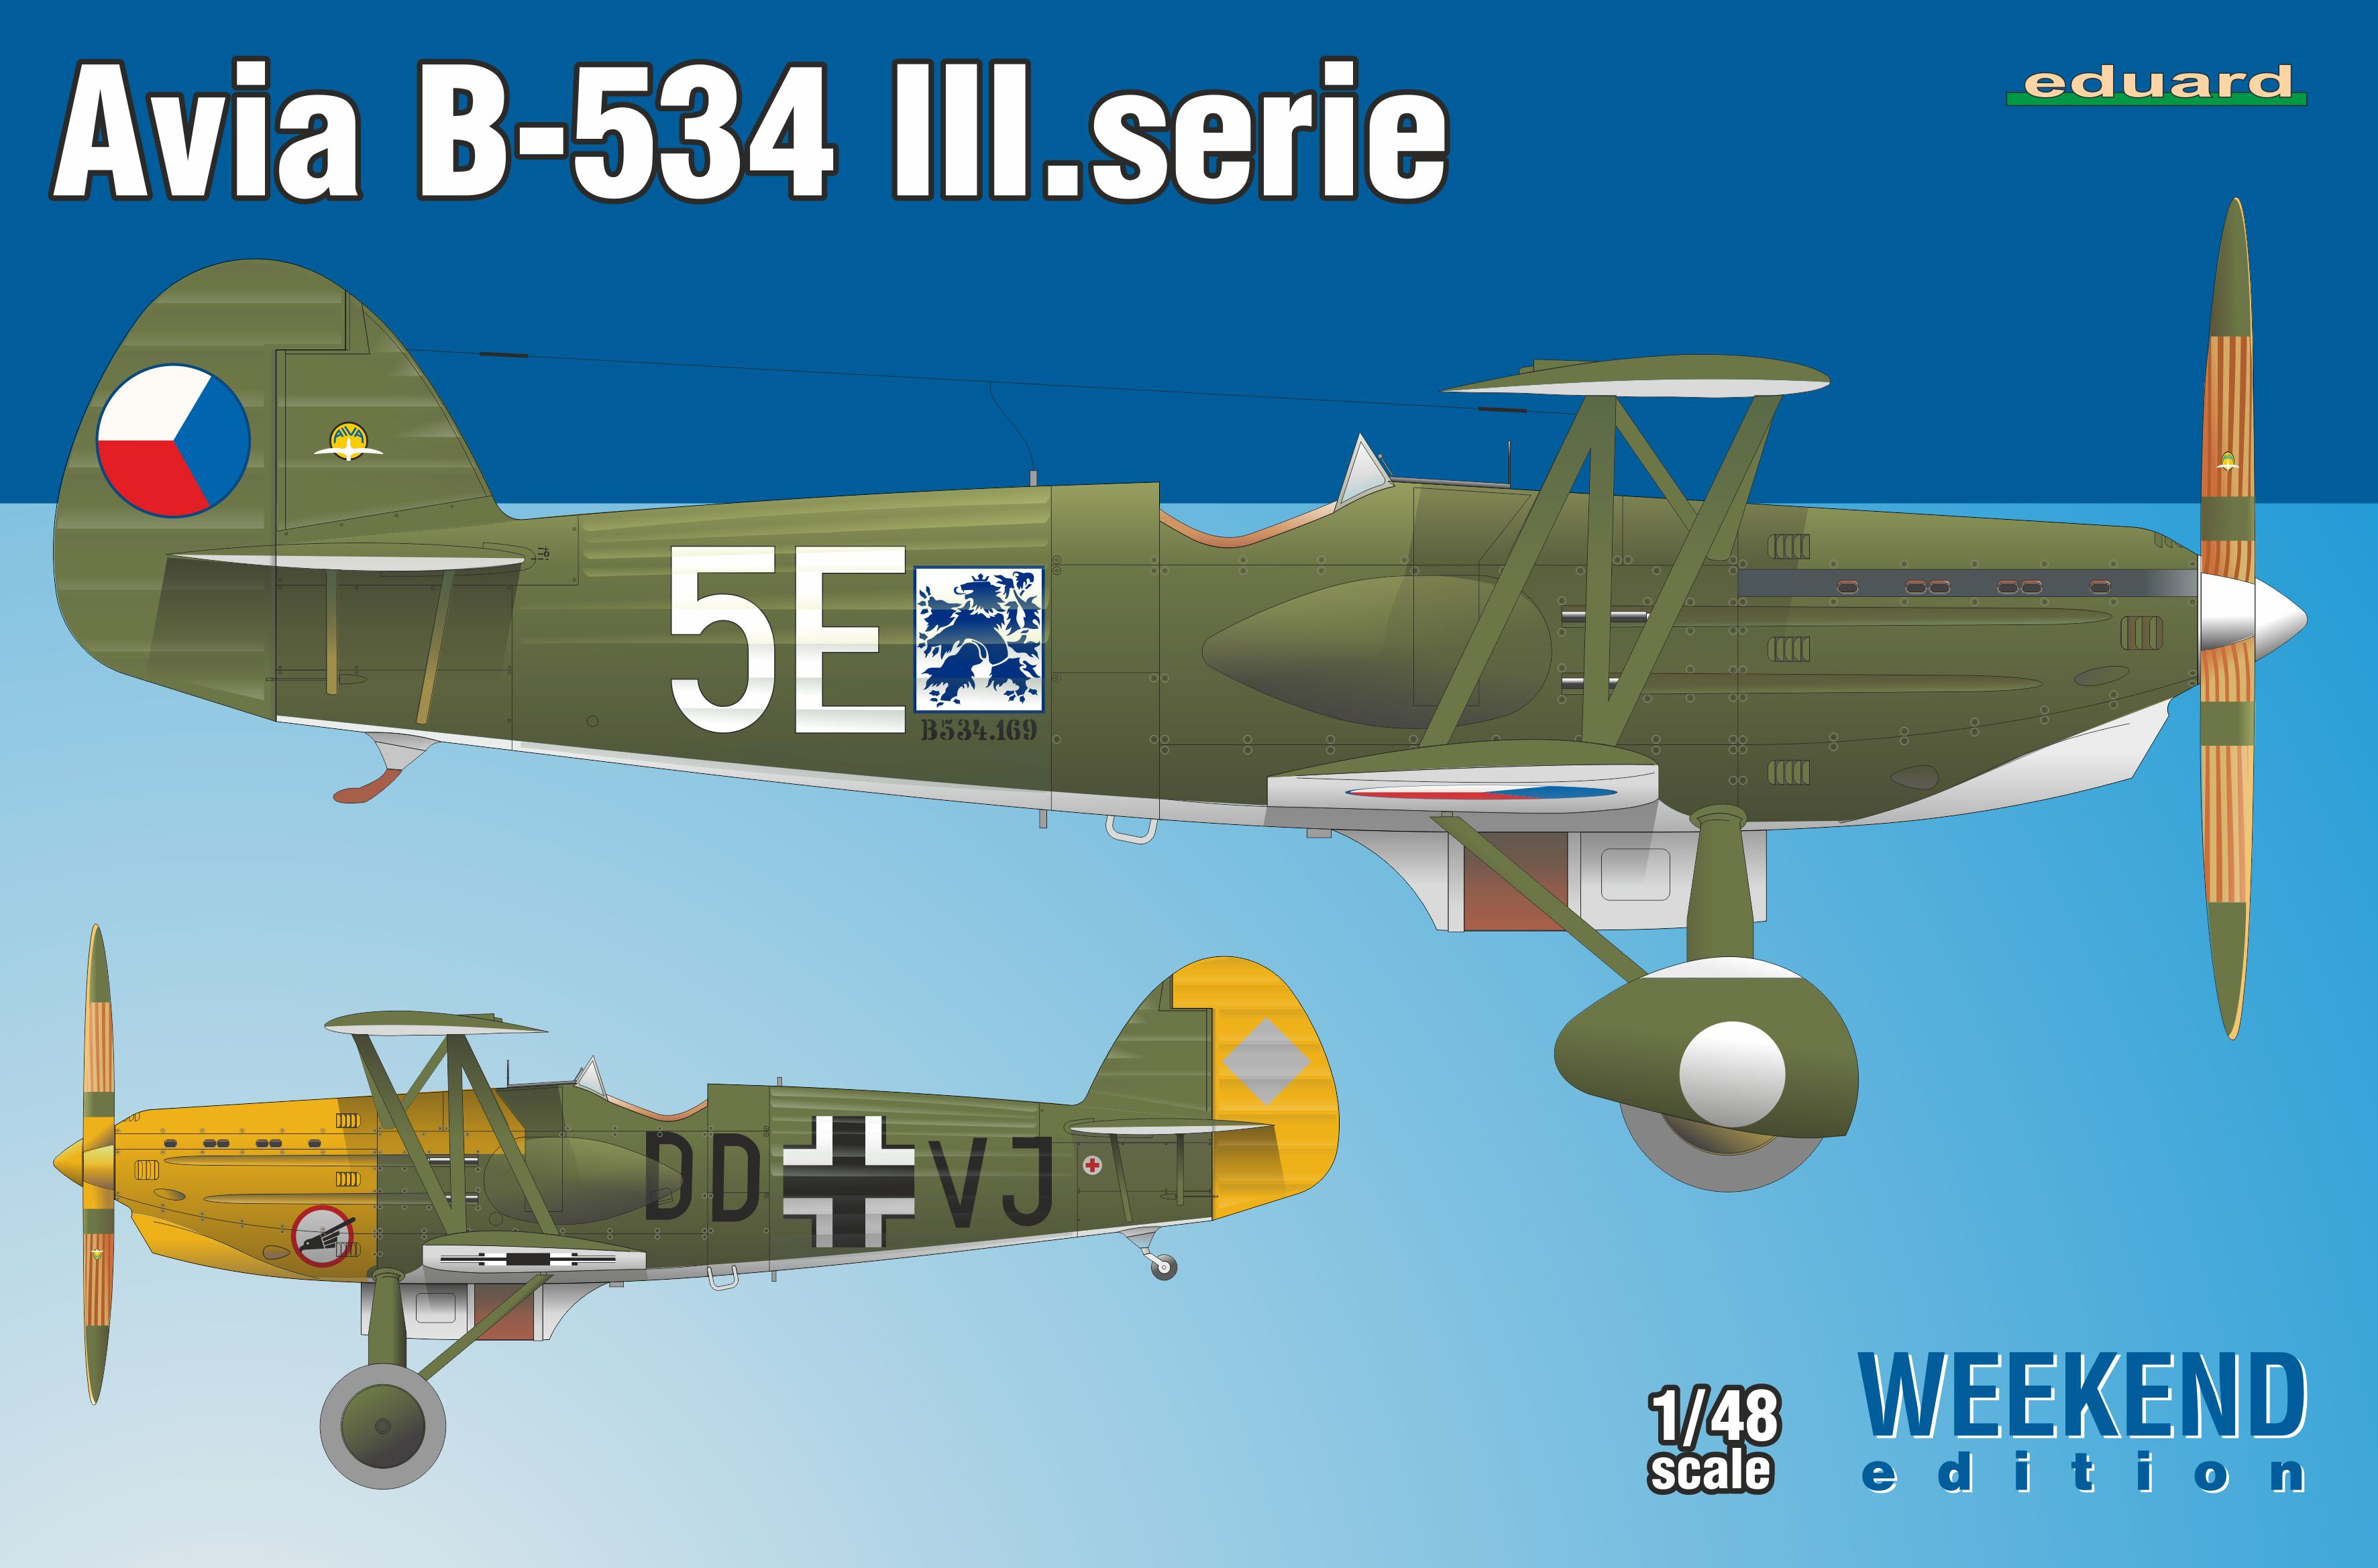 1/48 Avia B-534/III serie 1/48 Weekend edition